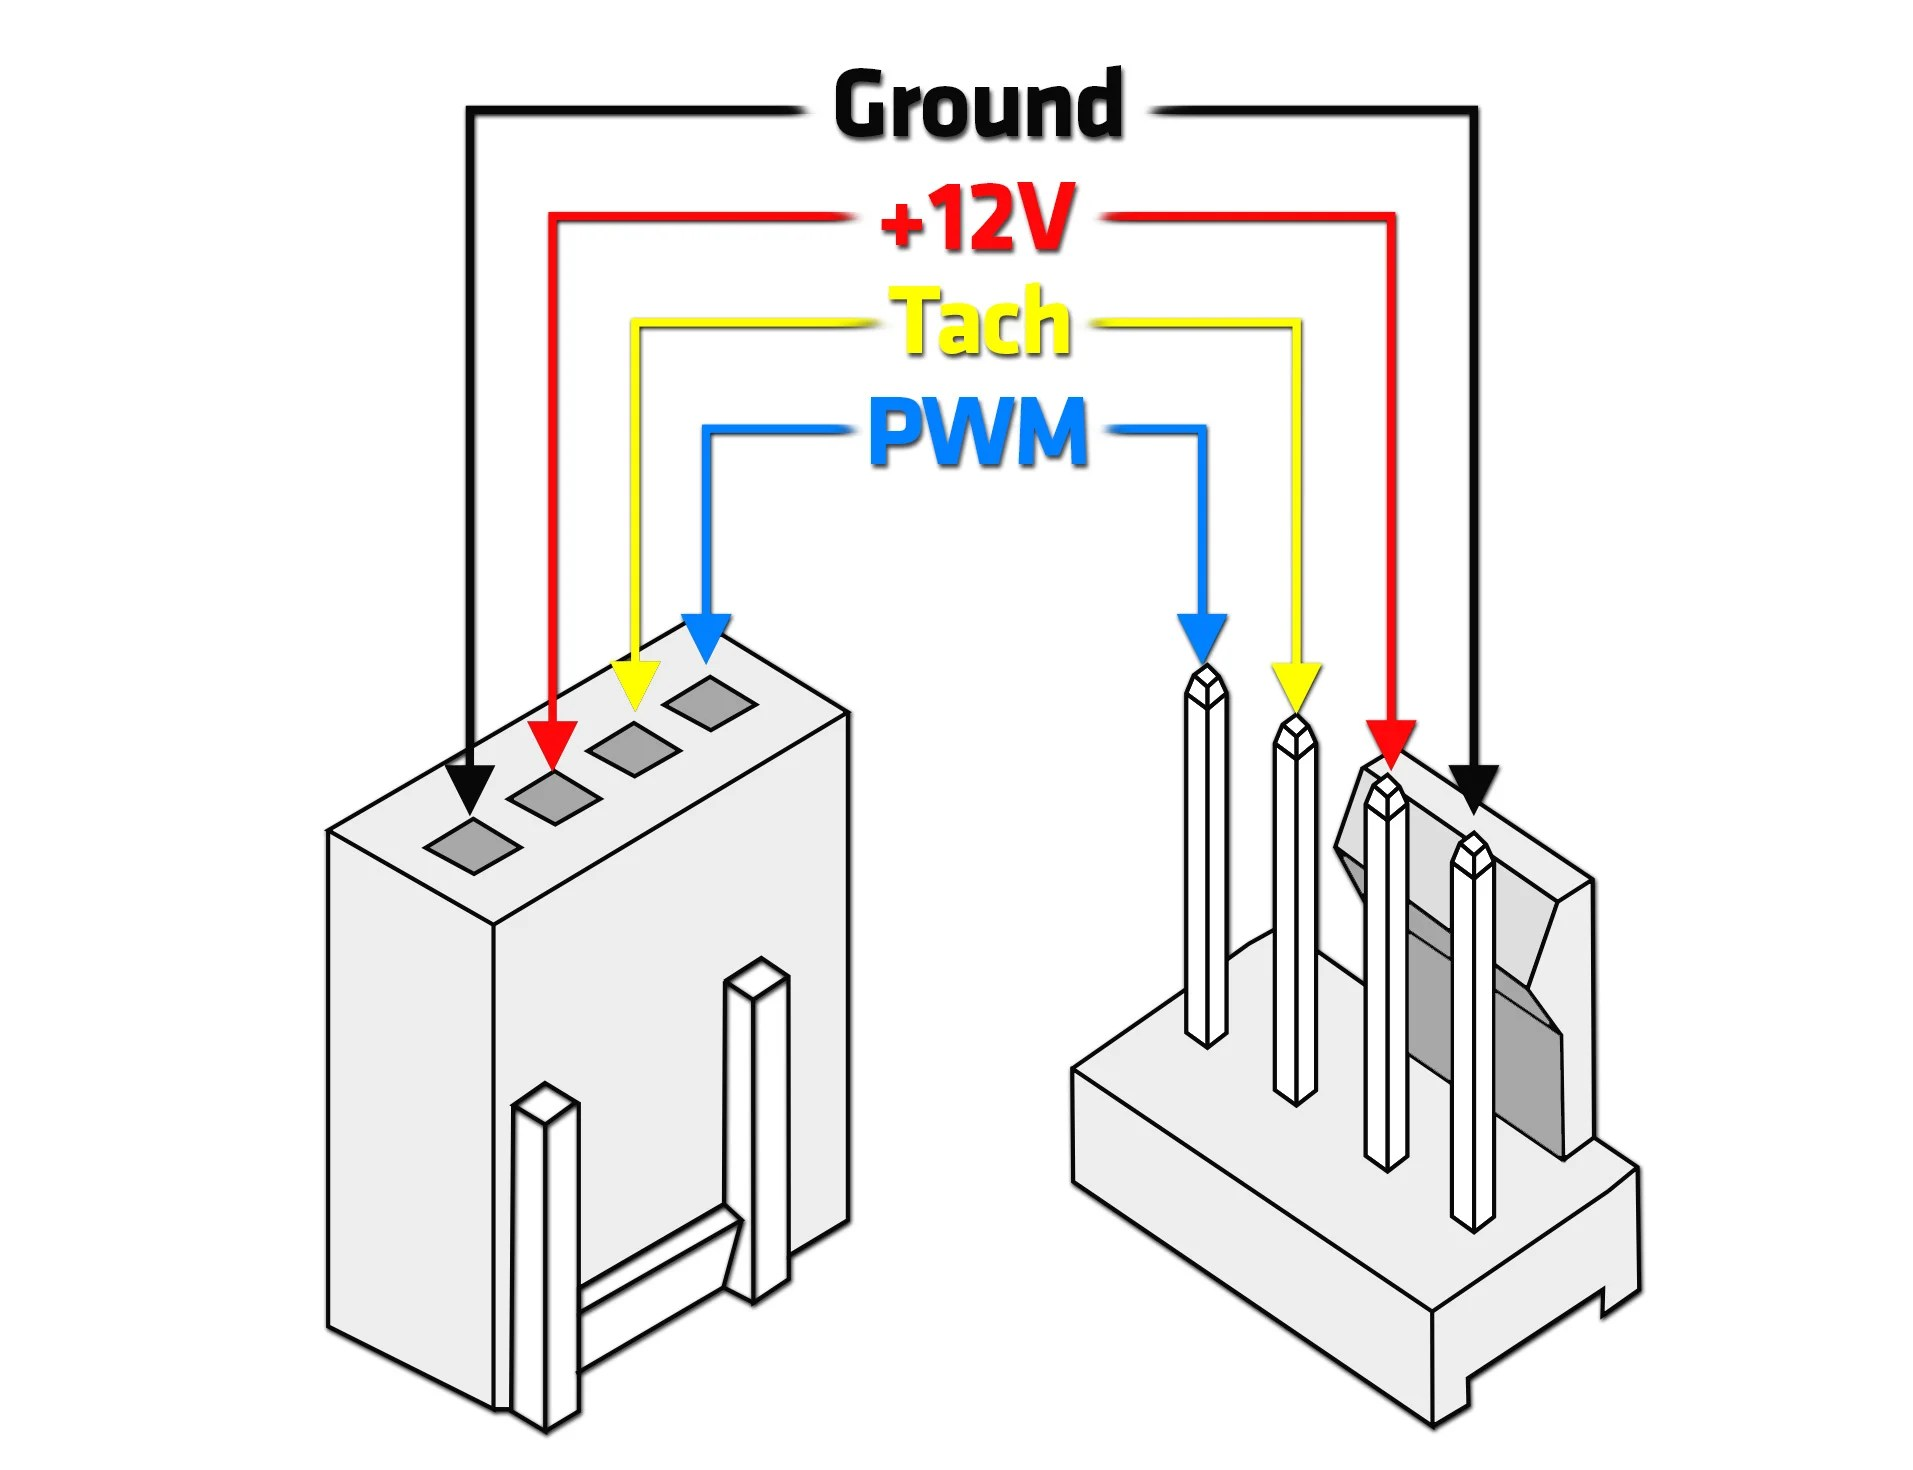 hight resolution of therefore we will explain what pwm actually is how it controls the speed of fans and pumps and we will also show you an example of a pwm profile in one